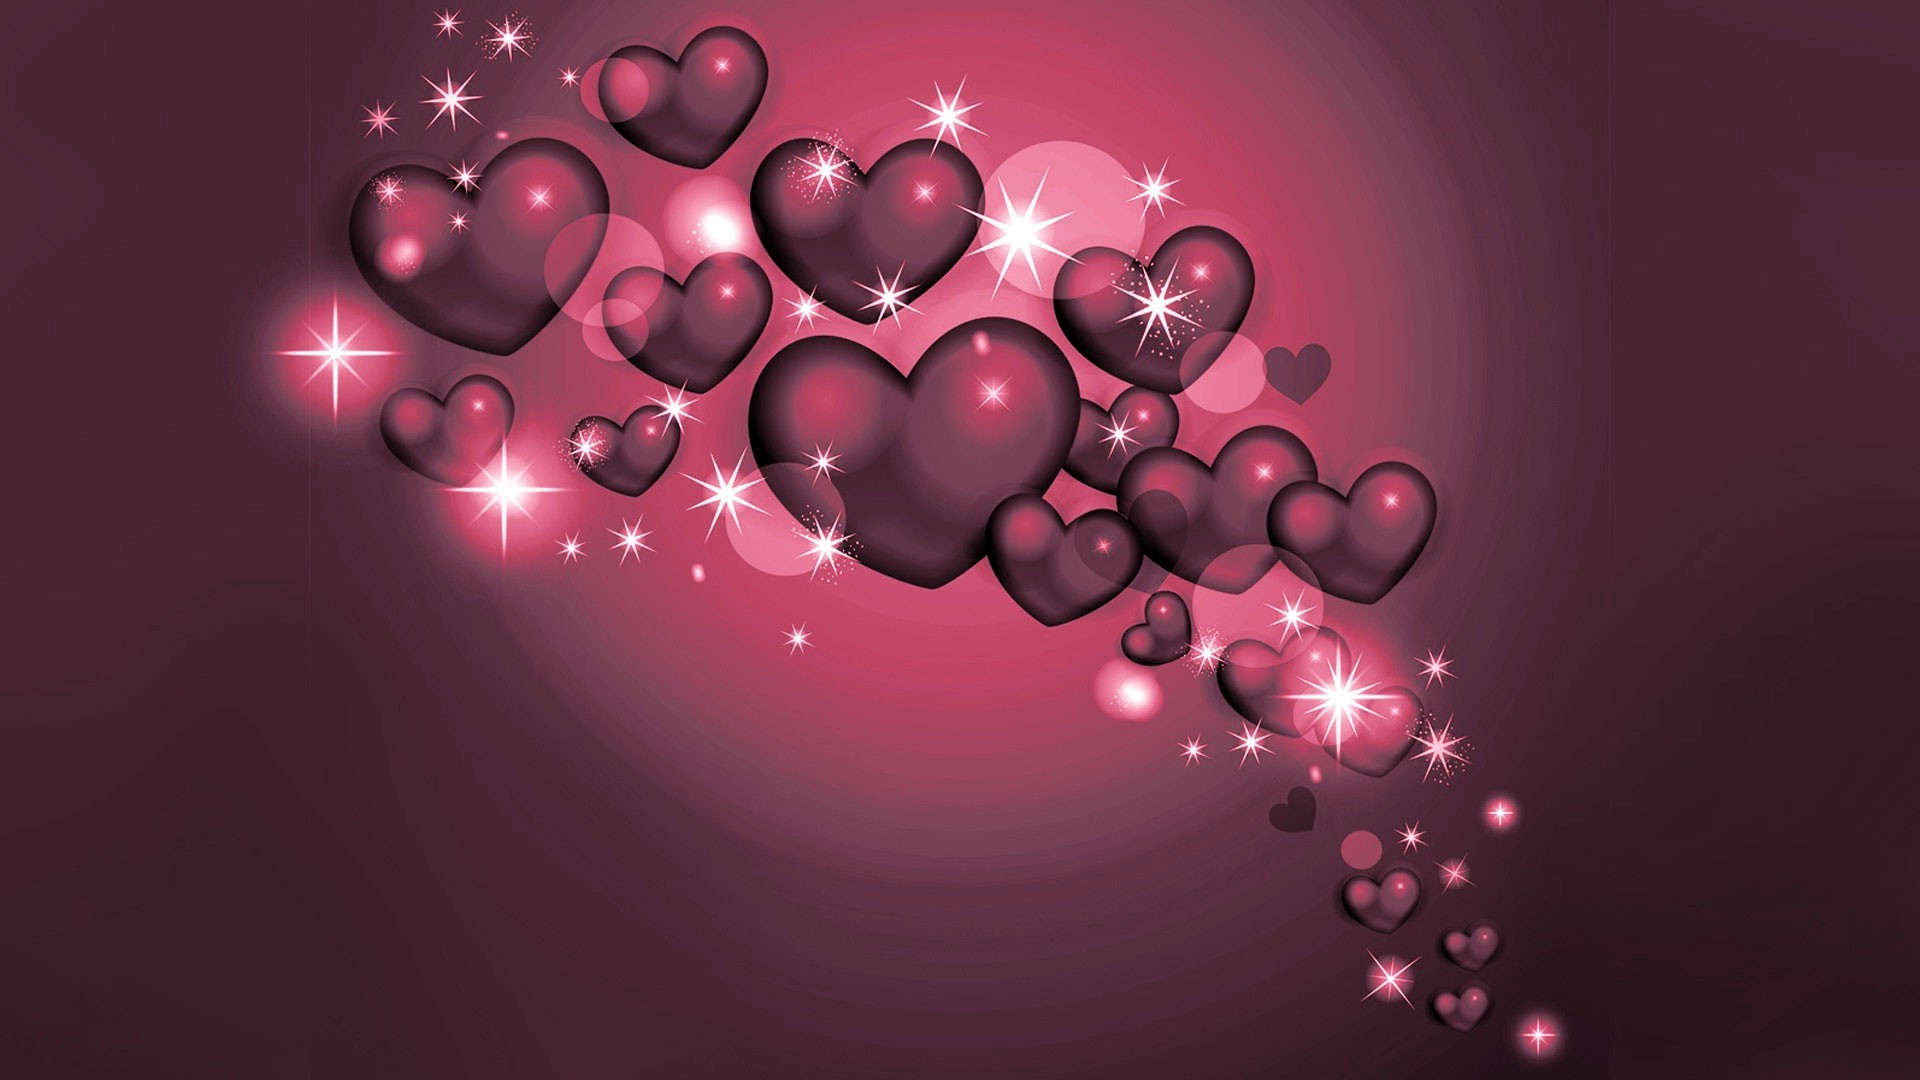 Cute Love Background 58 Images